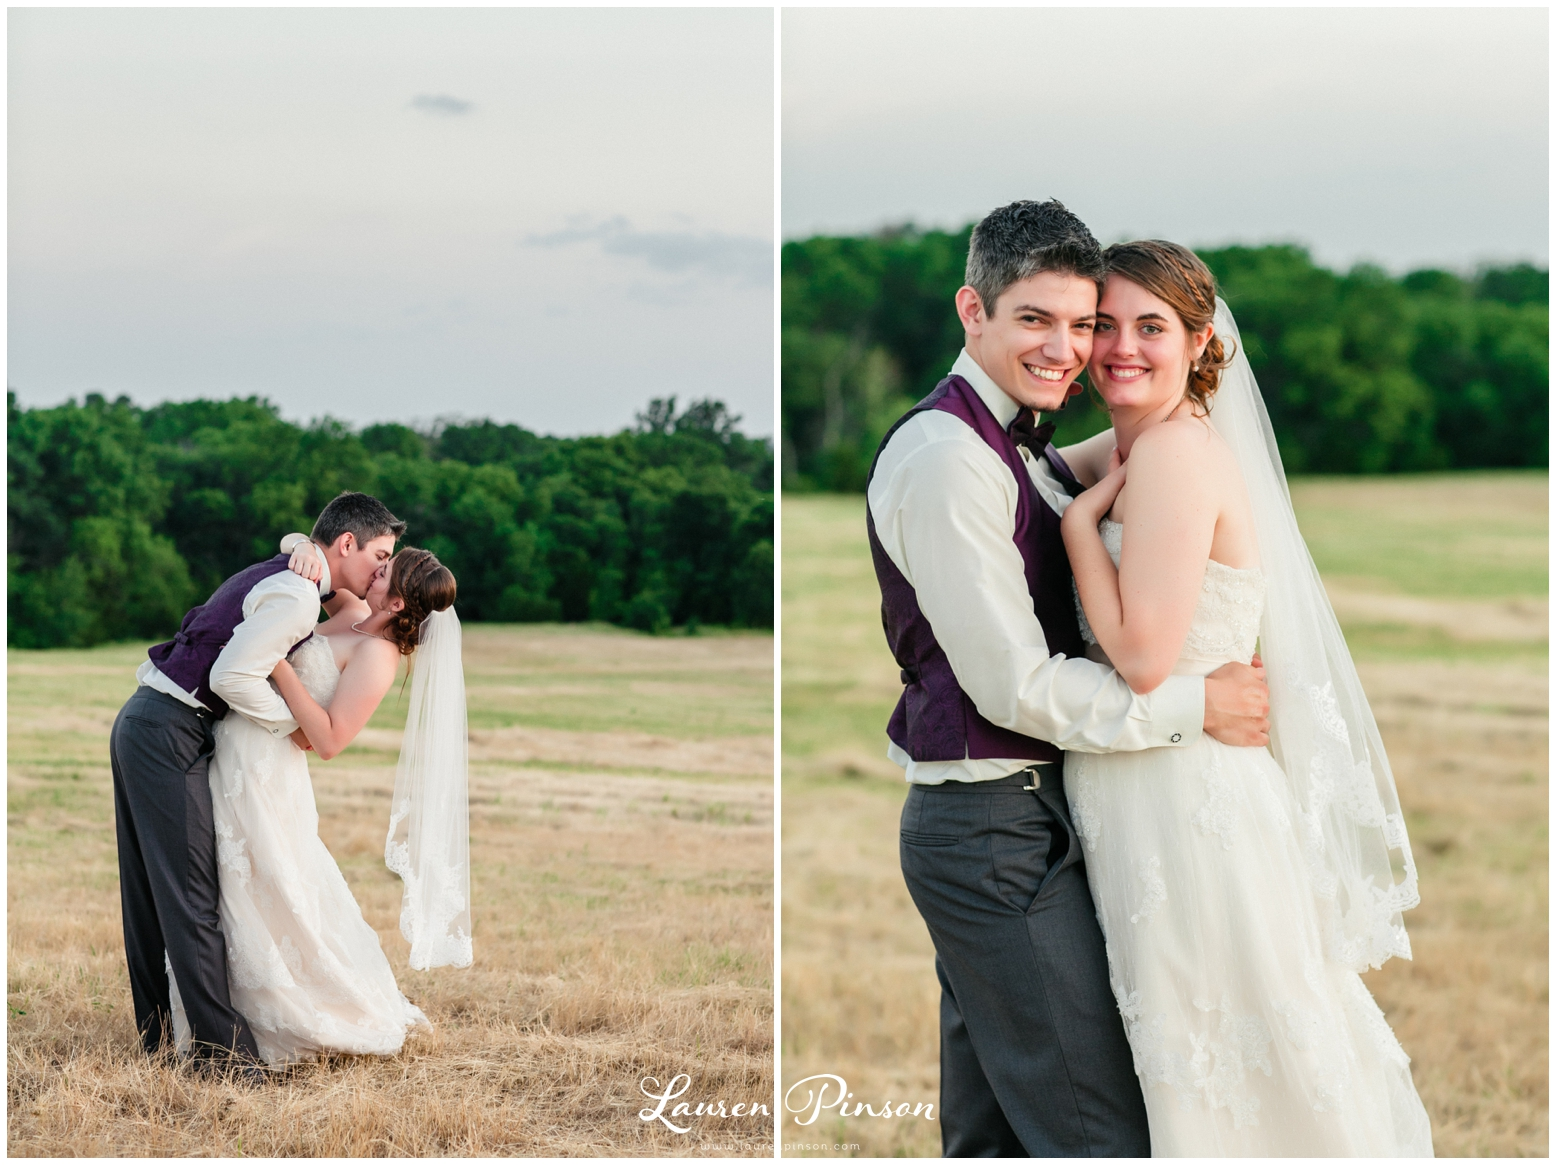 anna-texas-wedding-at-heritage-springs-by-the-springs-events-holly-villes-designs-texas-wedding-photography-mckinney-texas-hill-country-fredericksburg_0294.jpg